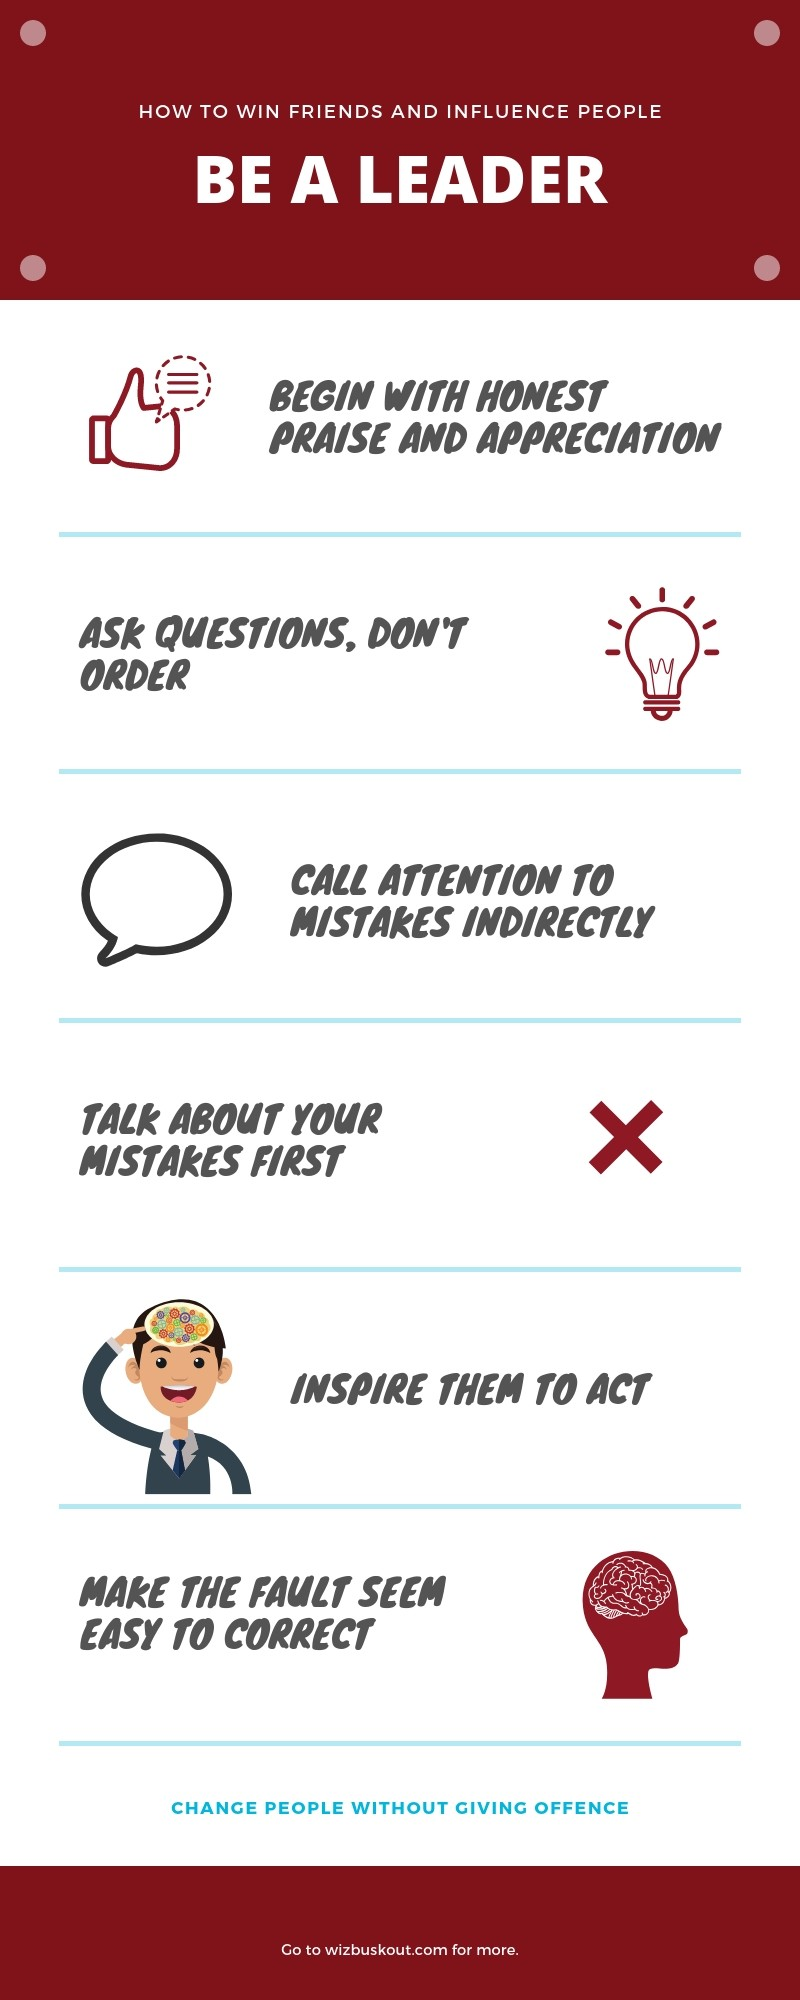 how to win friends and influence people summary infographic